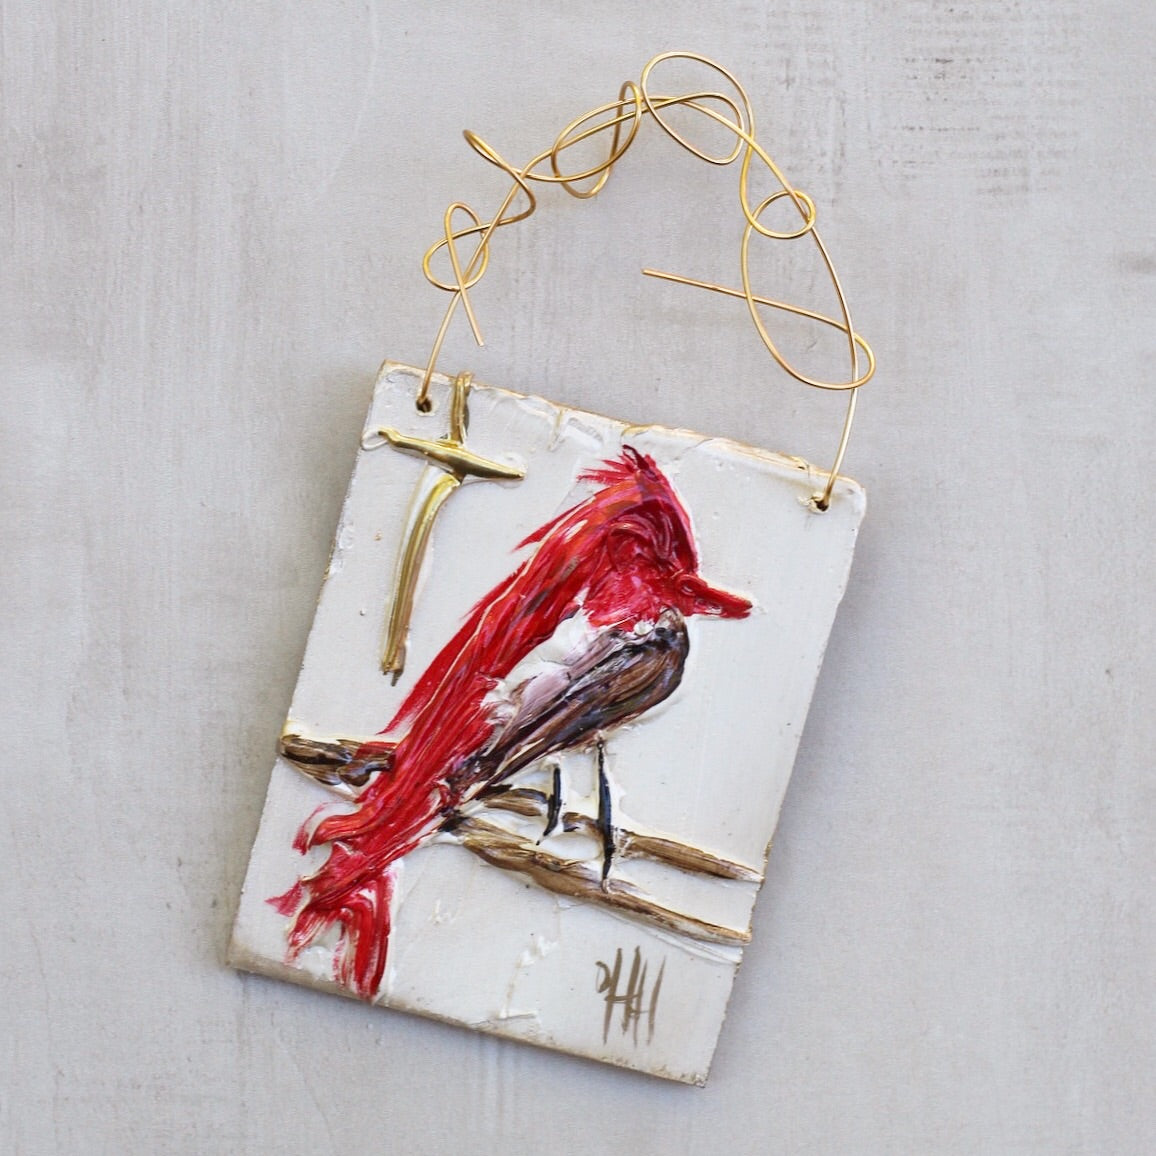 RED BIRD HANGER 2